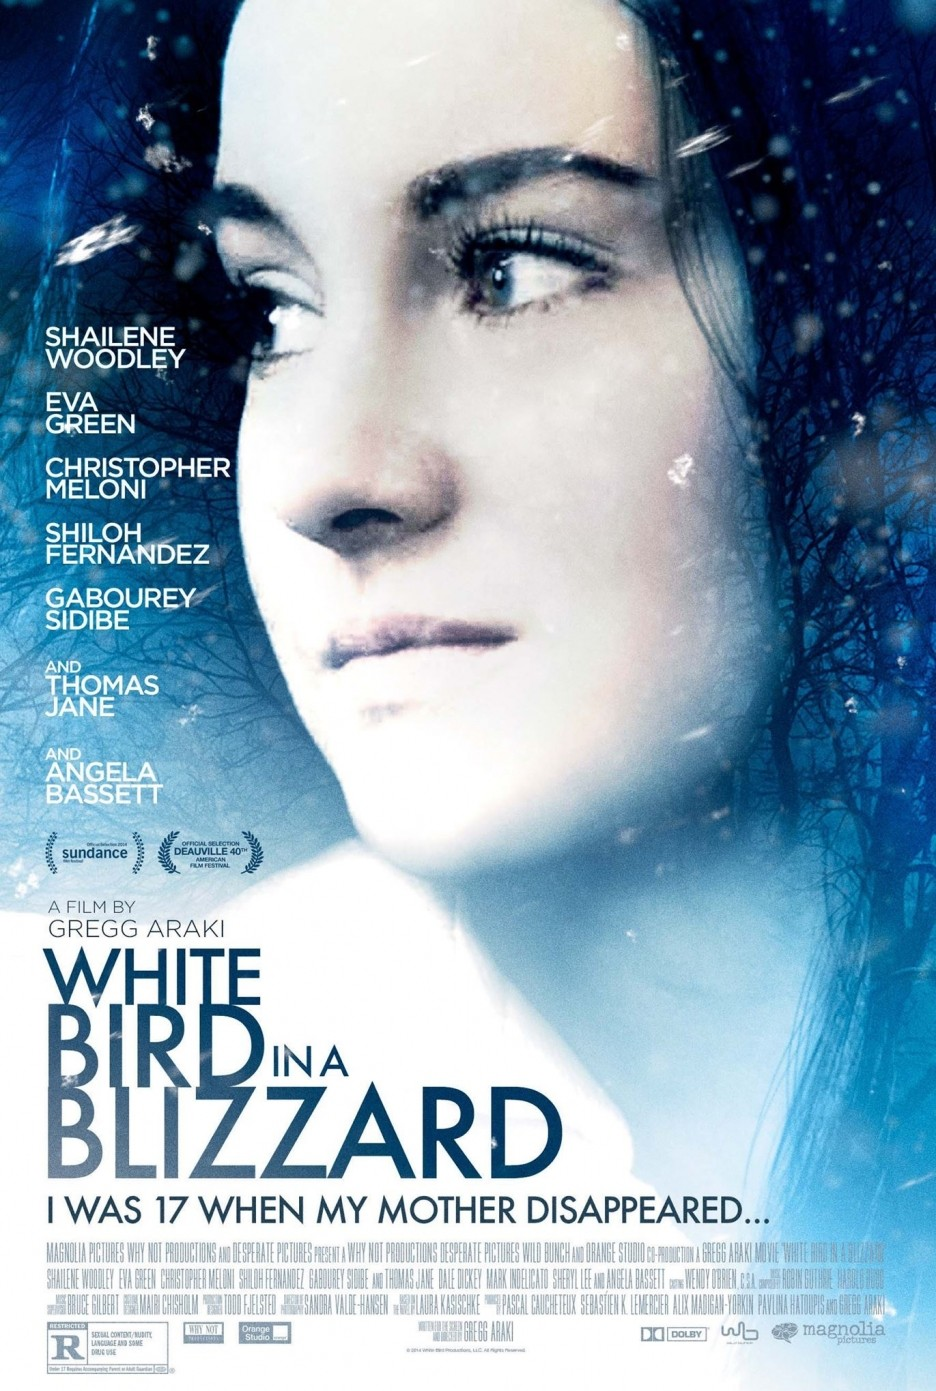 White Bird in a Blizzard movie poster